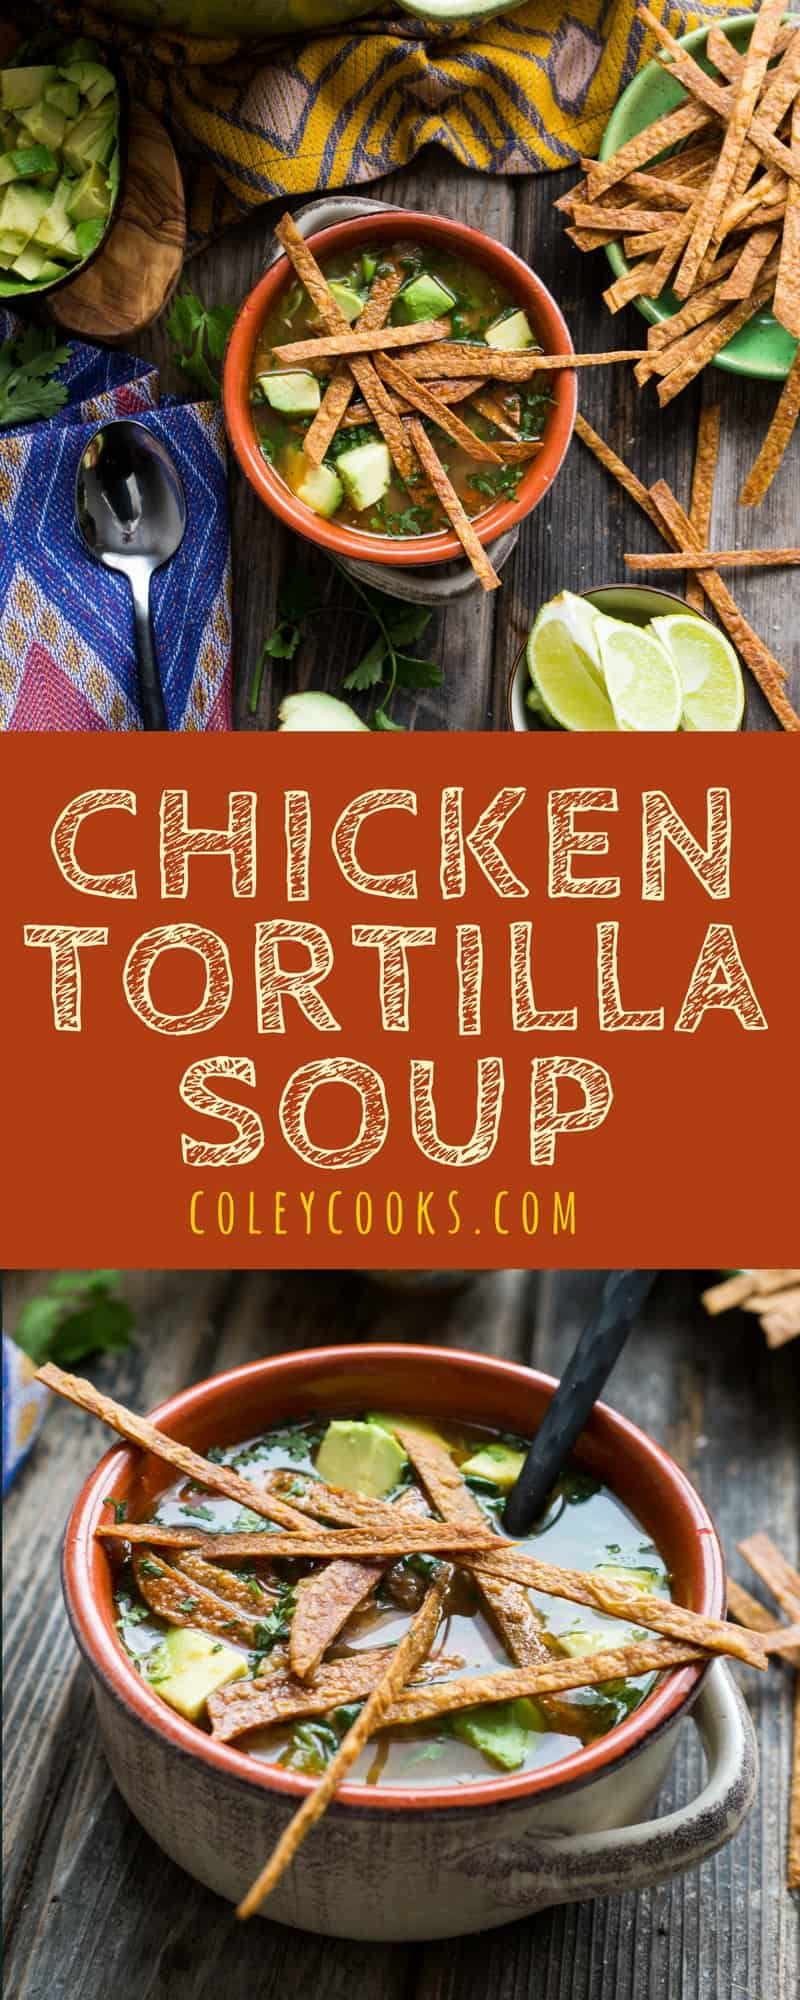 CHICKEN TORTILLA SOUP | Full of flavor, super healthy, and easy to make! This chicken tortilla soup hits all the marks. Also freezer friendly! | ColeyCooks.com